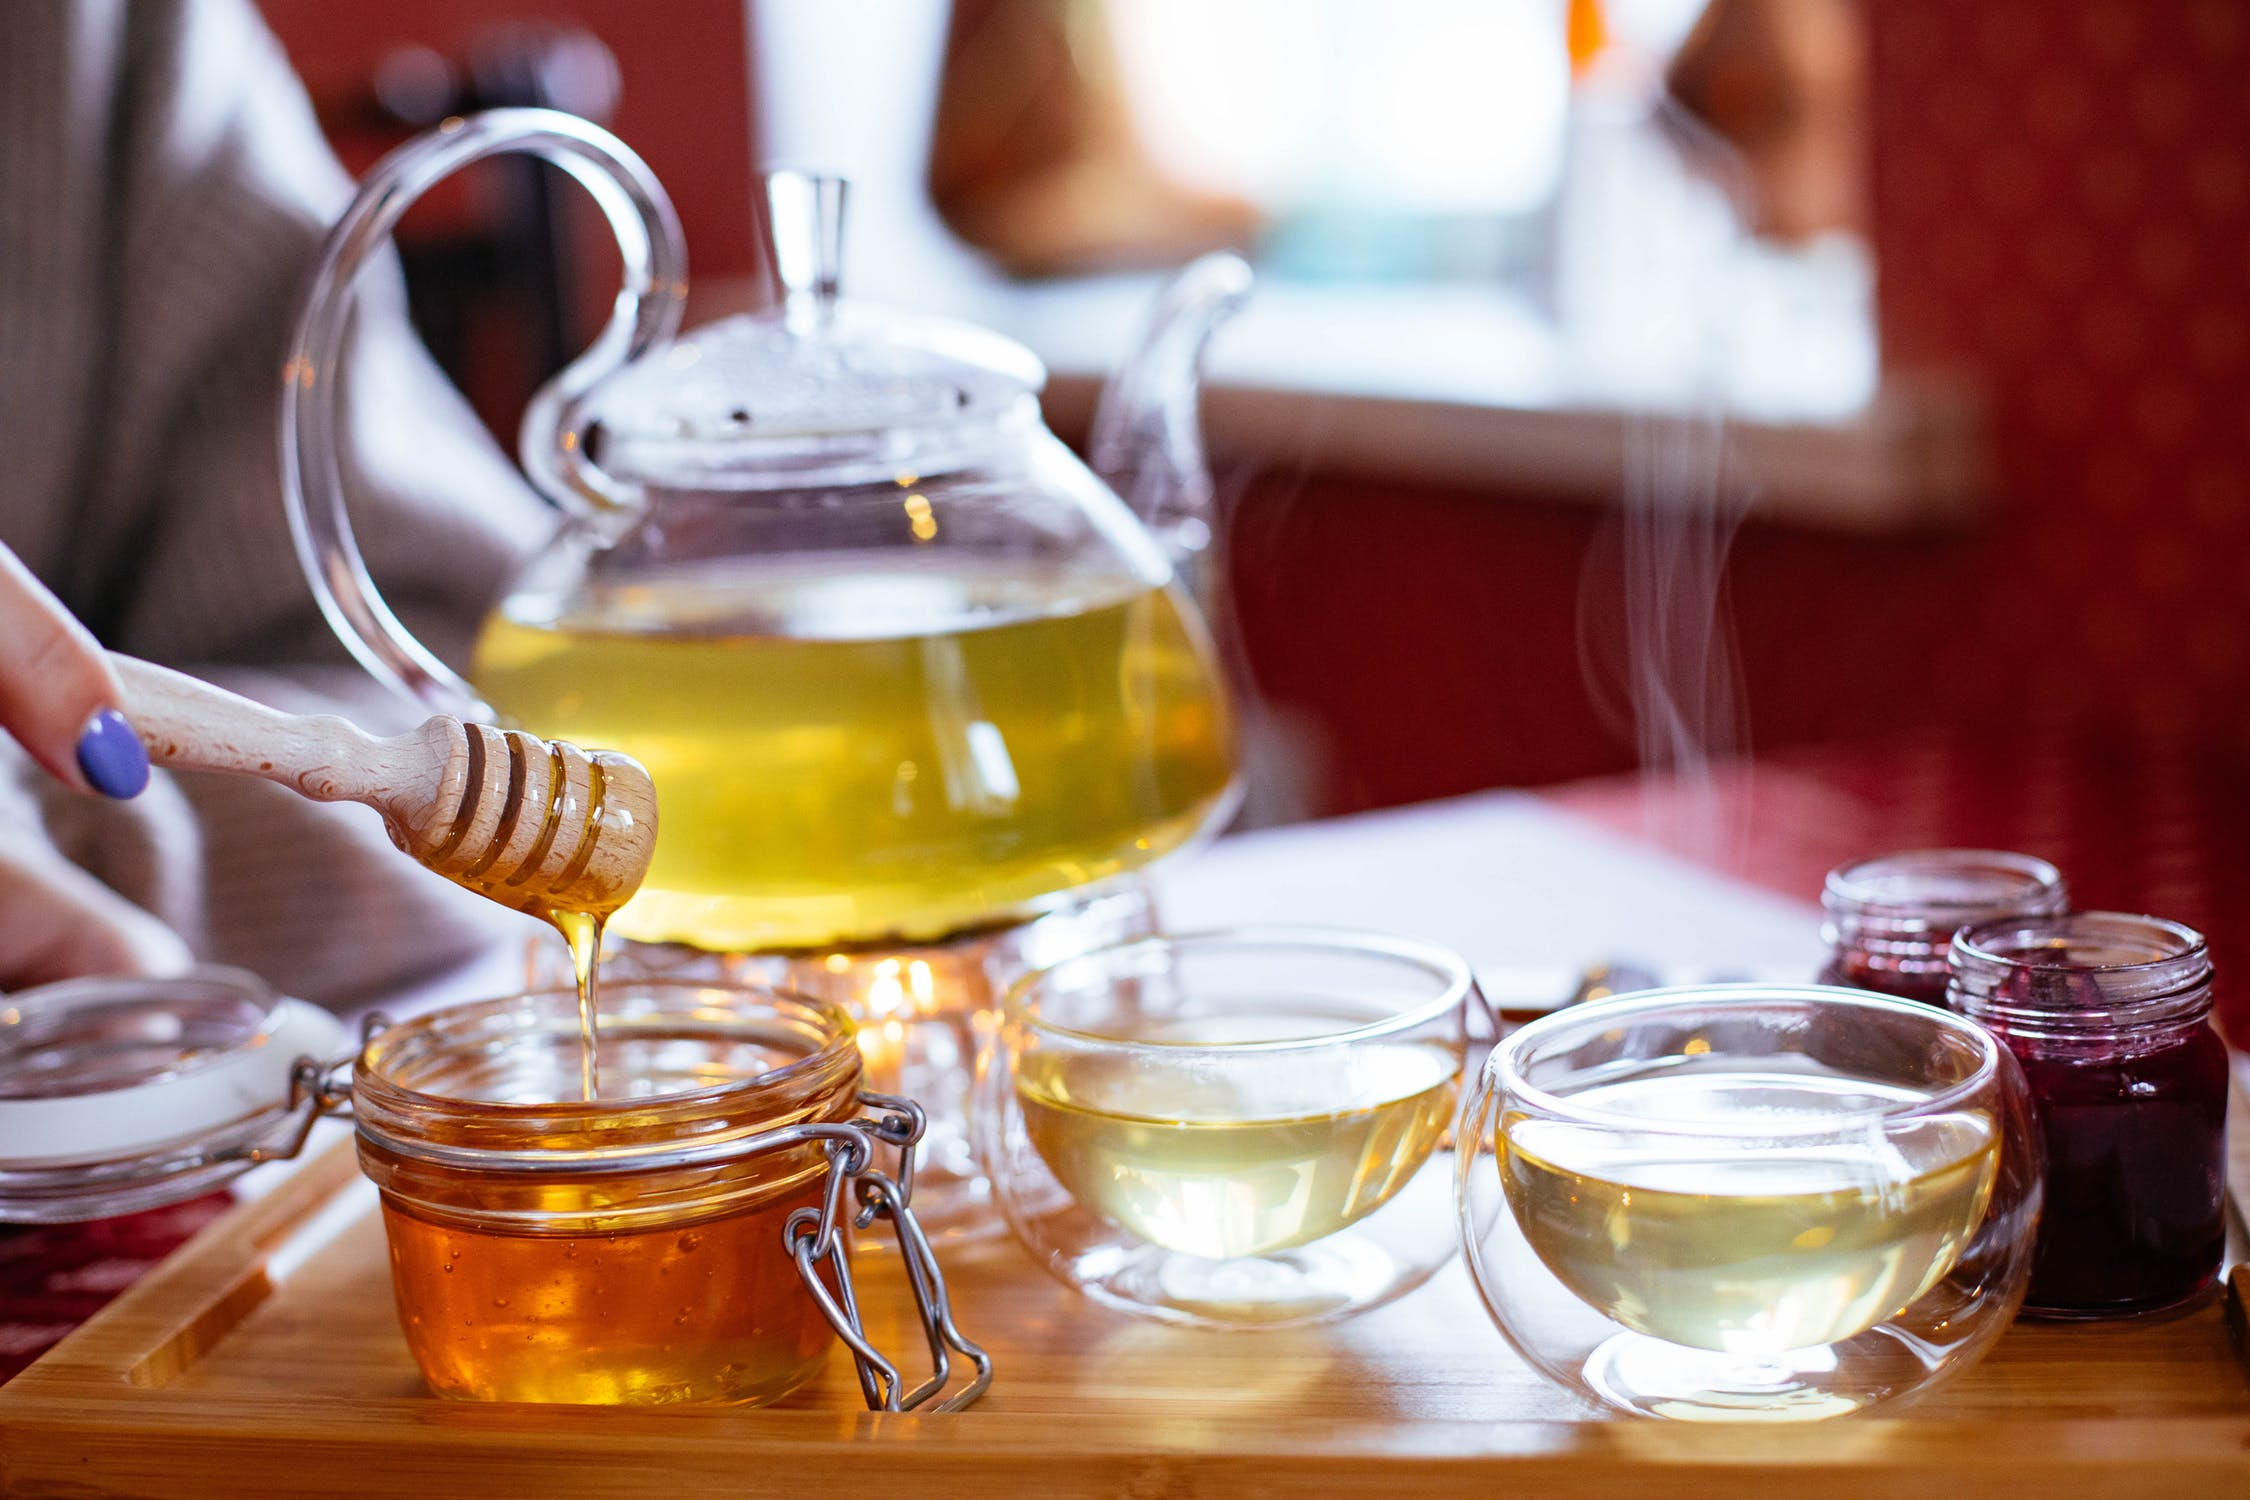 The 6 Best Detox Teas For Weight Loss to Help You Slim Down